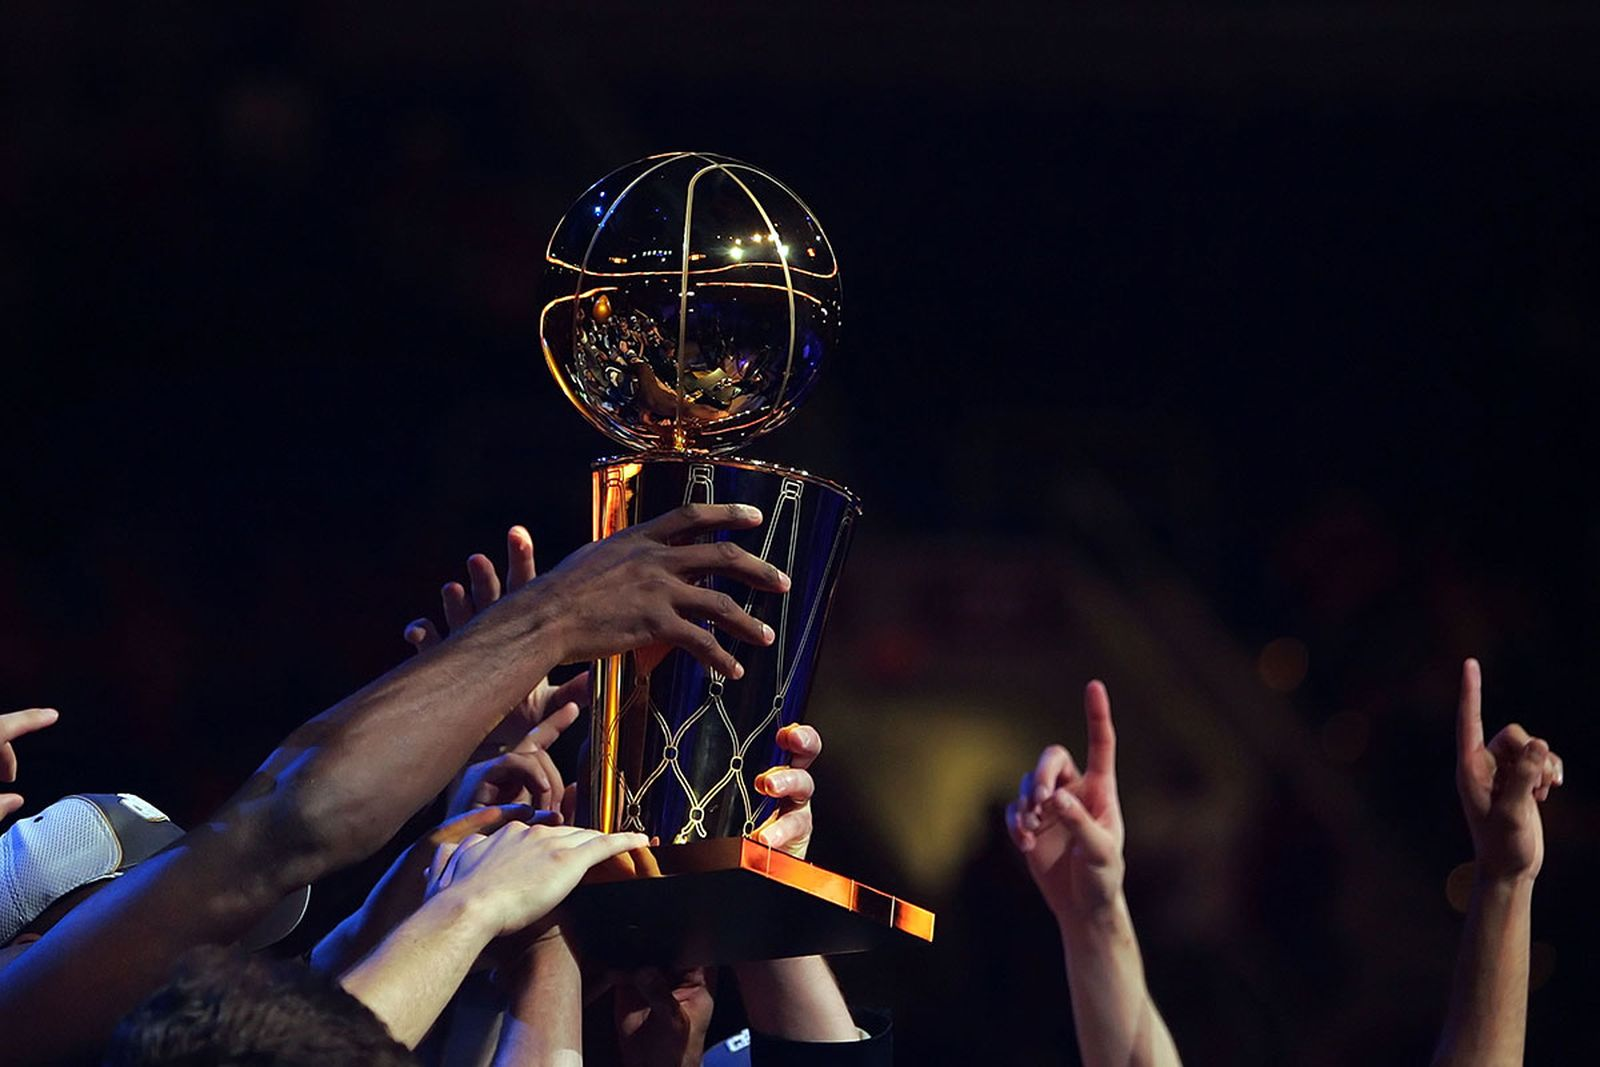 Members of the San Antonio Spurs hold up the Larry O'Brien Championship Trophy after winnin Game Four of the NBA Finals against the Cleveland Cavaliers